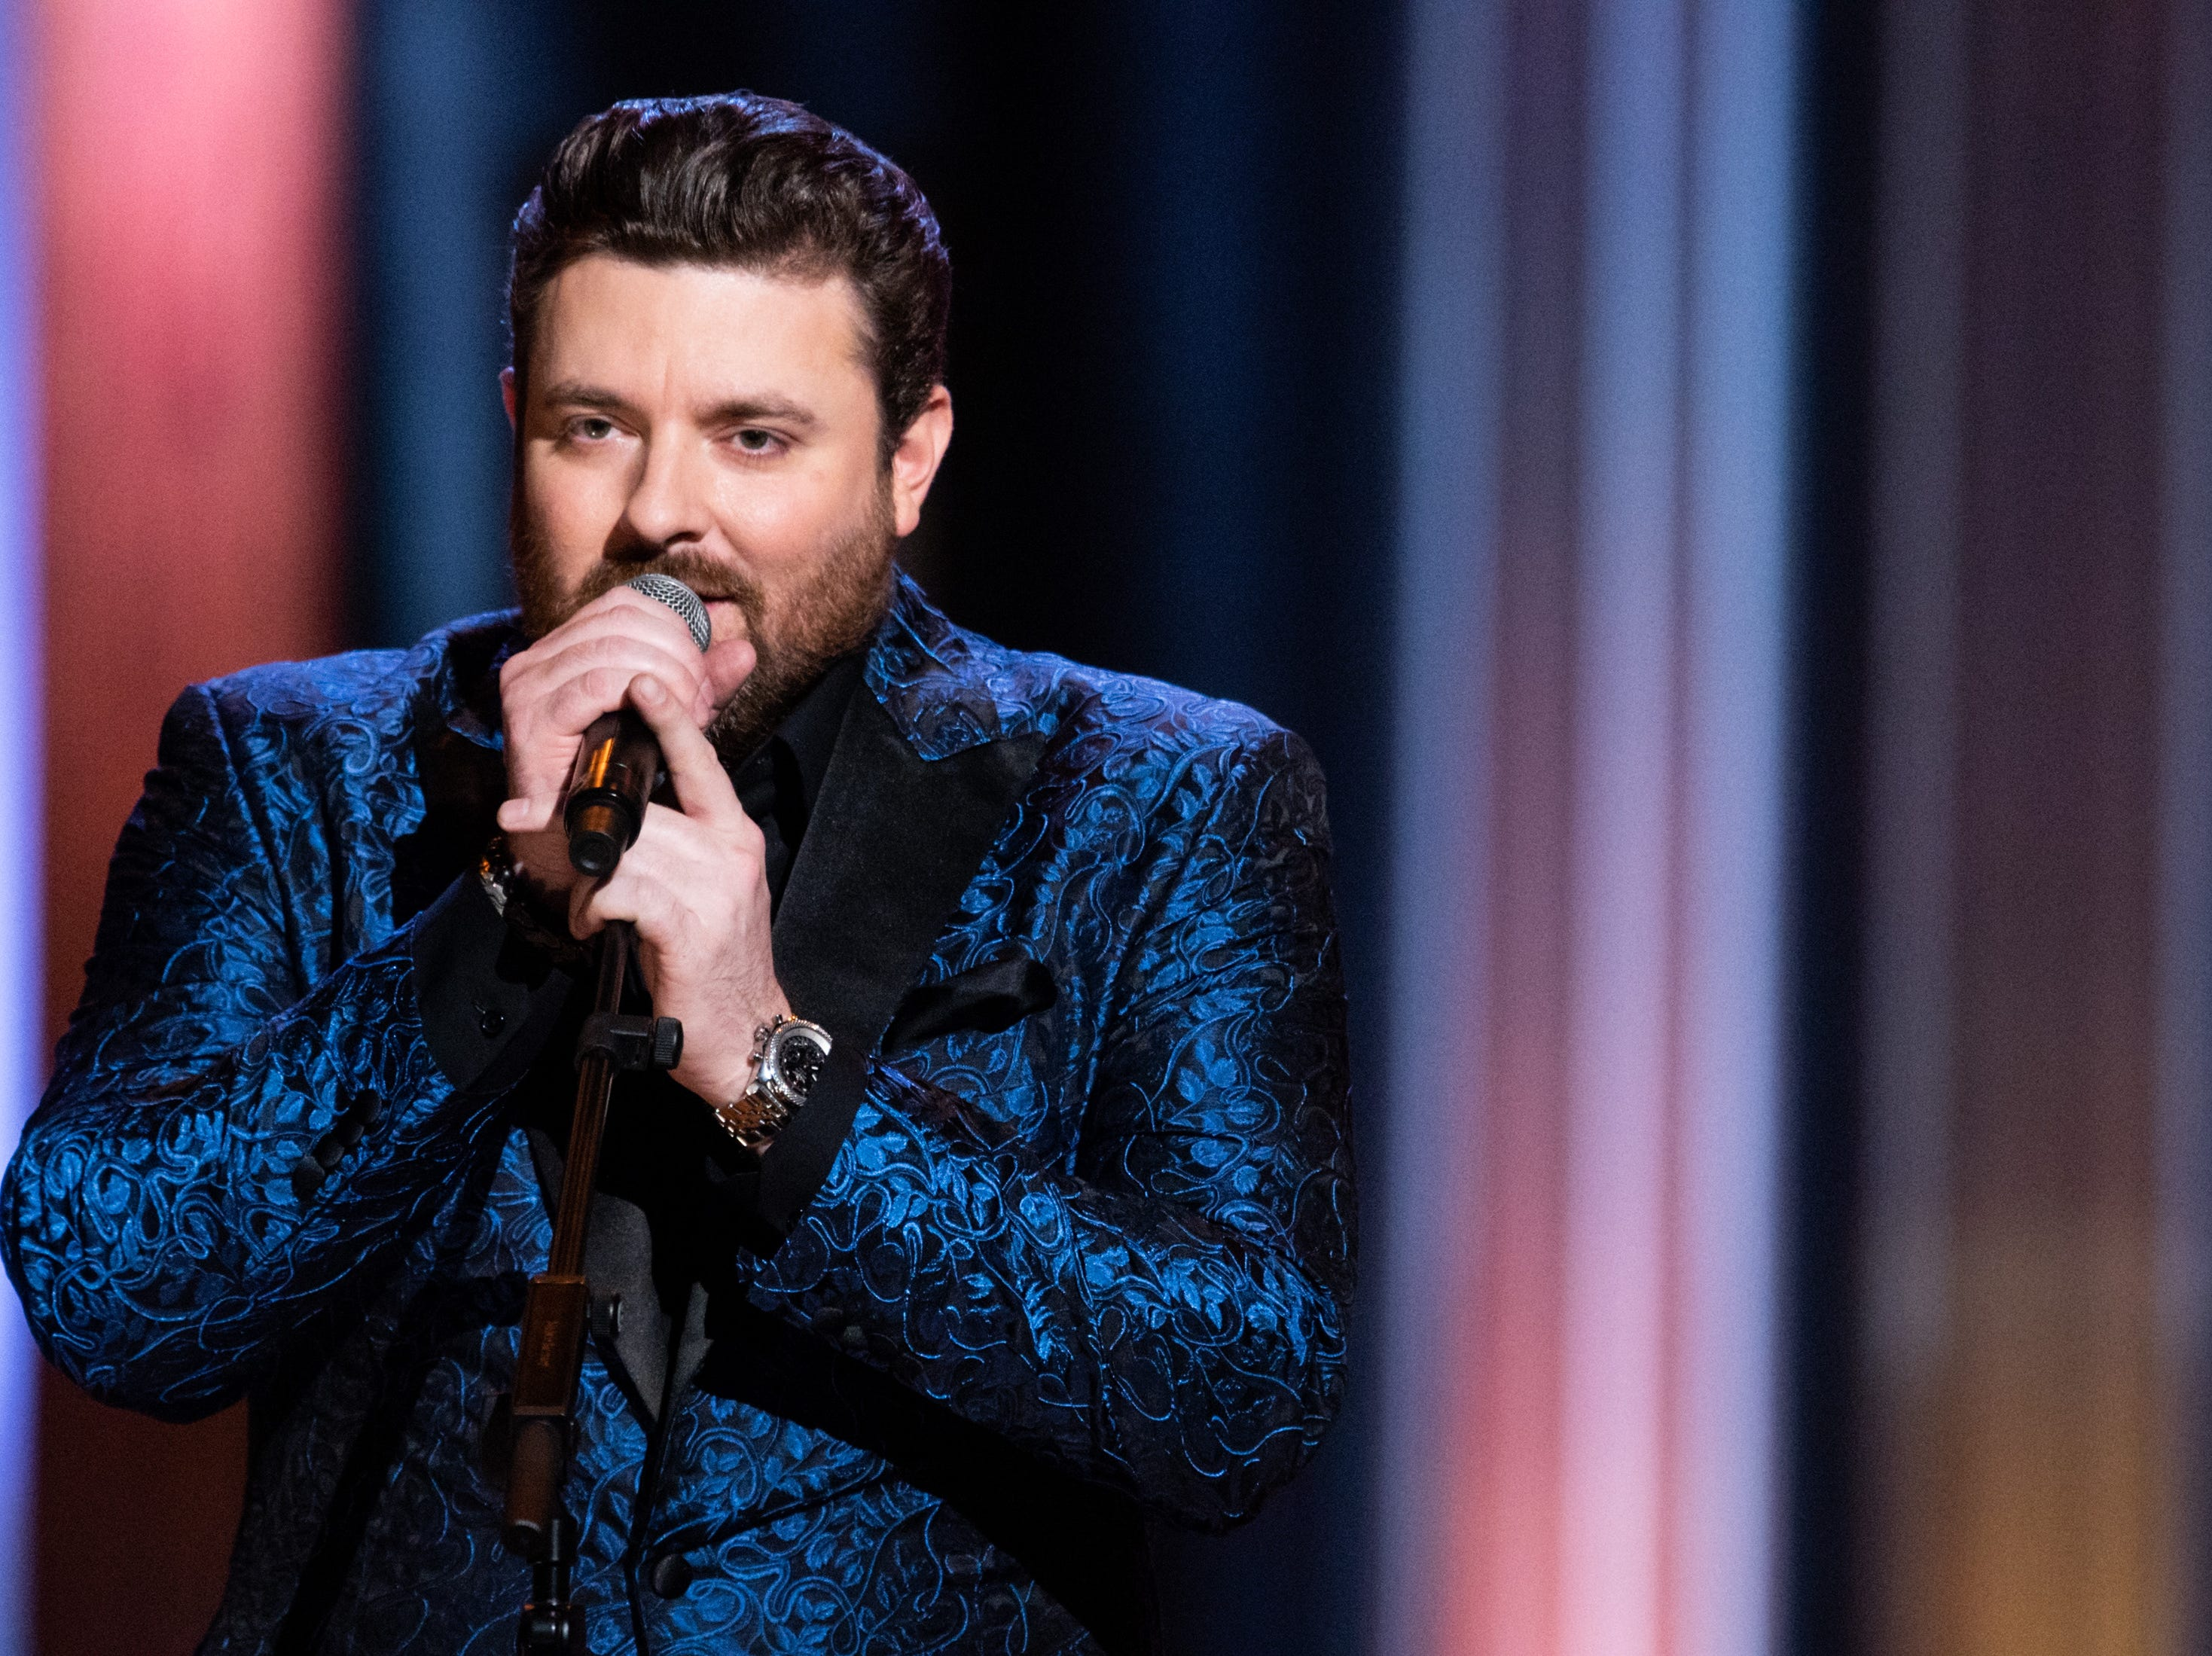 Chris Young performs during the An Opry Salute to Ray Charles concert at The Grand Ole Opry in Nashville, Tenn., Monday, Oct. 8, 2018.